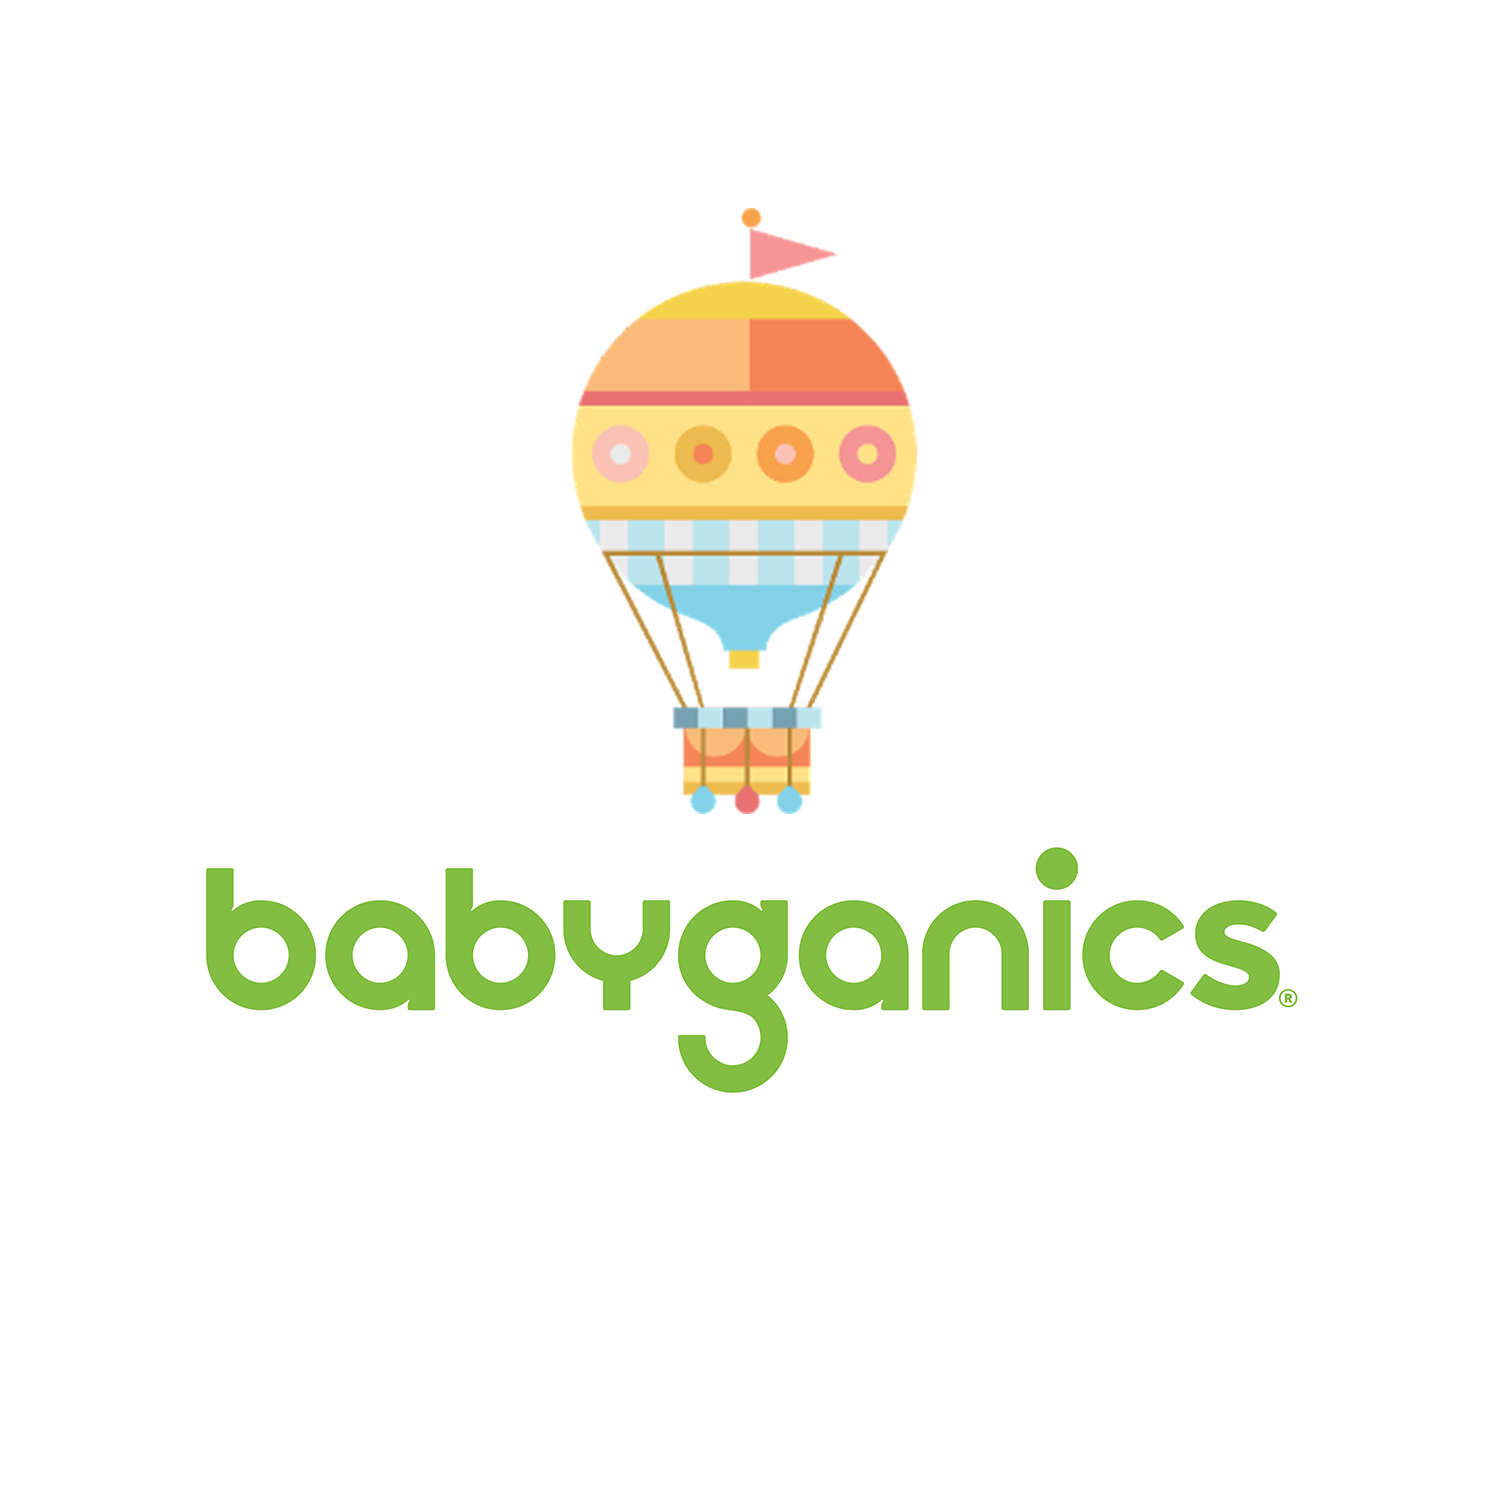 Babyganics - Their wool dryer balls are a great replacement for dryer sheets and, they have tons of more natural children's personal care products, too.